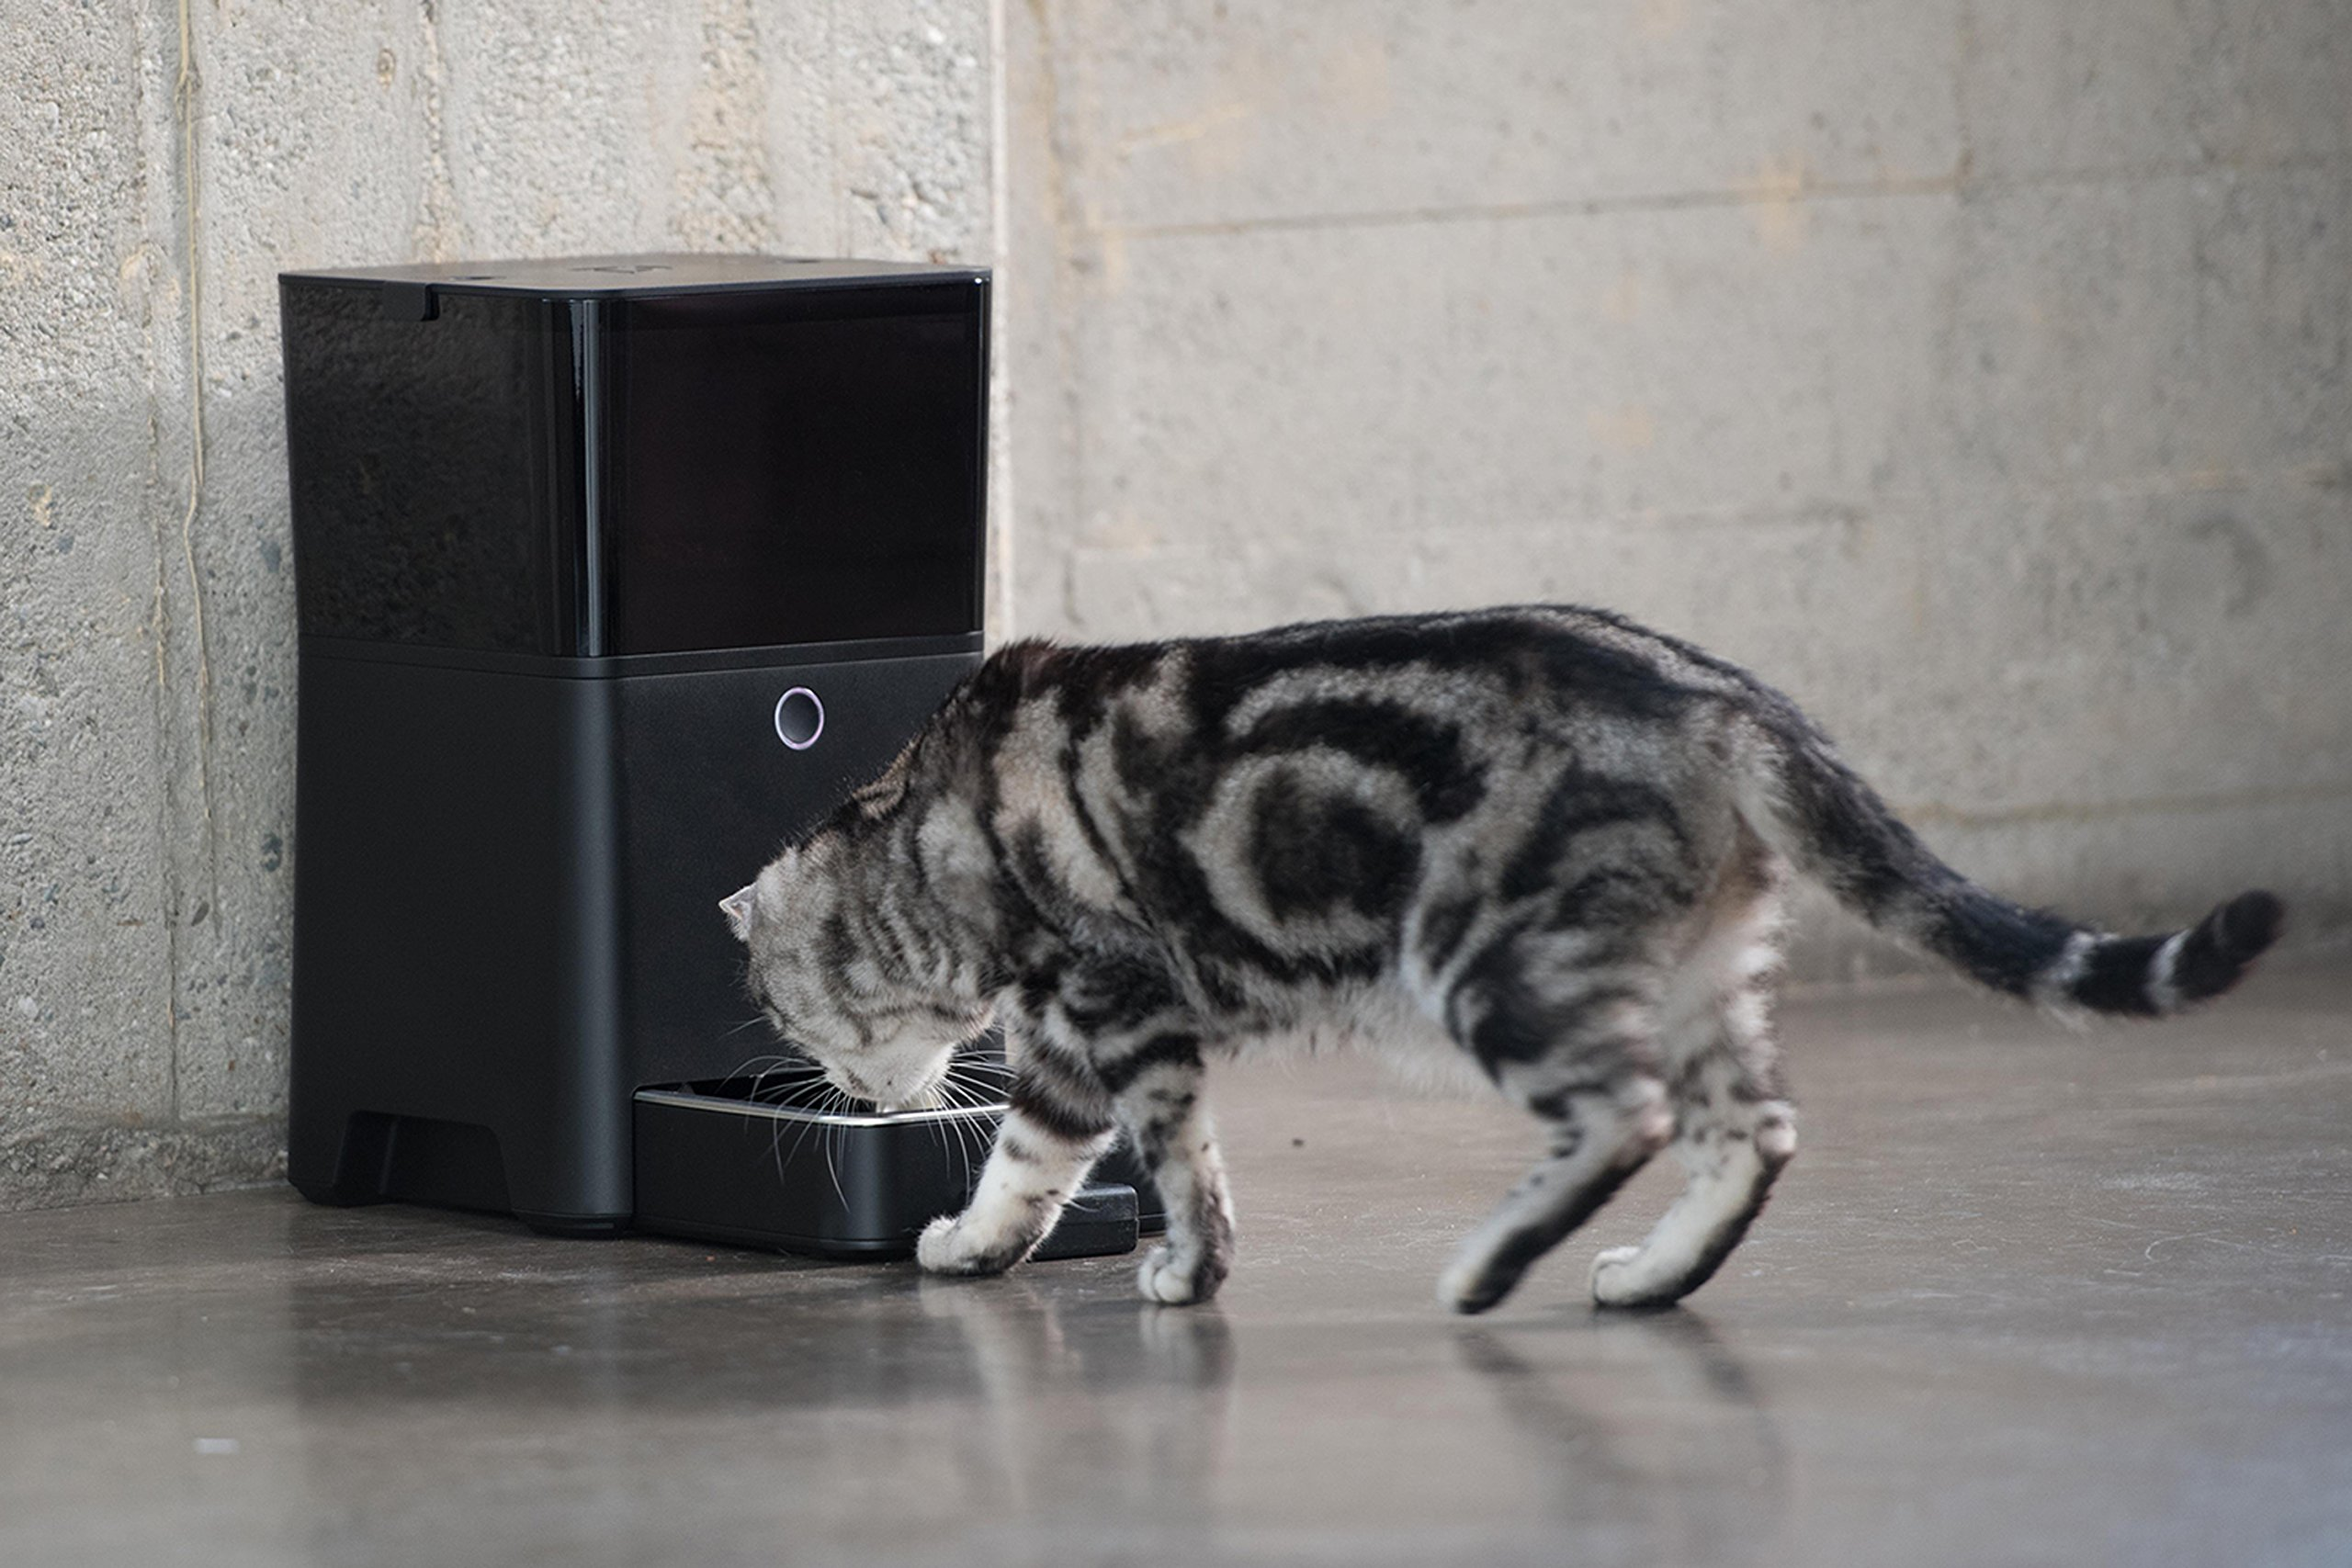 Petnet SmartFeeder, Automatic Pet Feeder for Cats and Dogs, Works with Amazon Alexa by Petnet (Image #8)